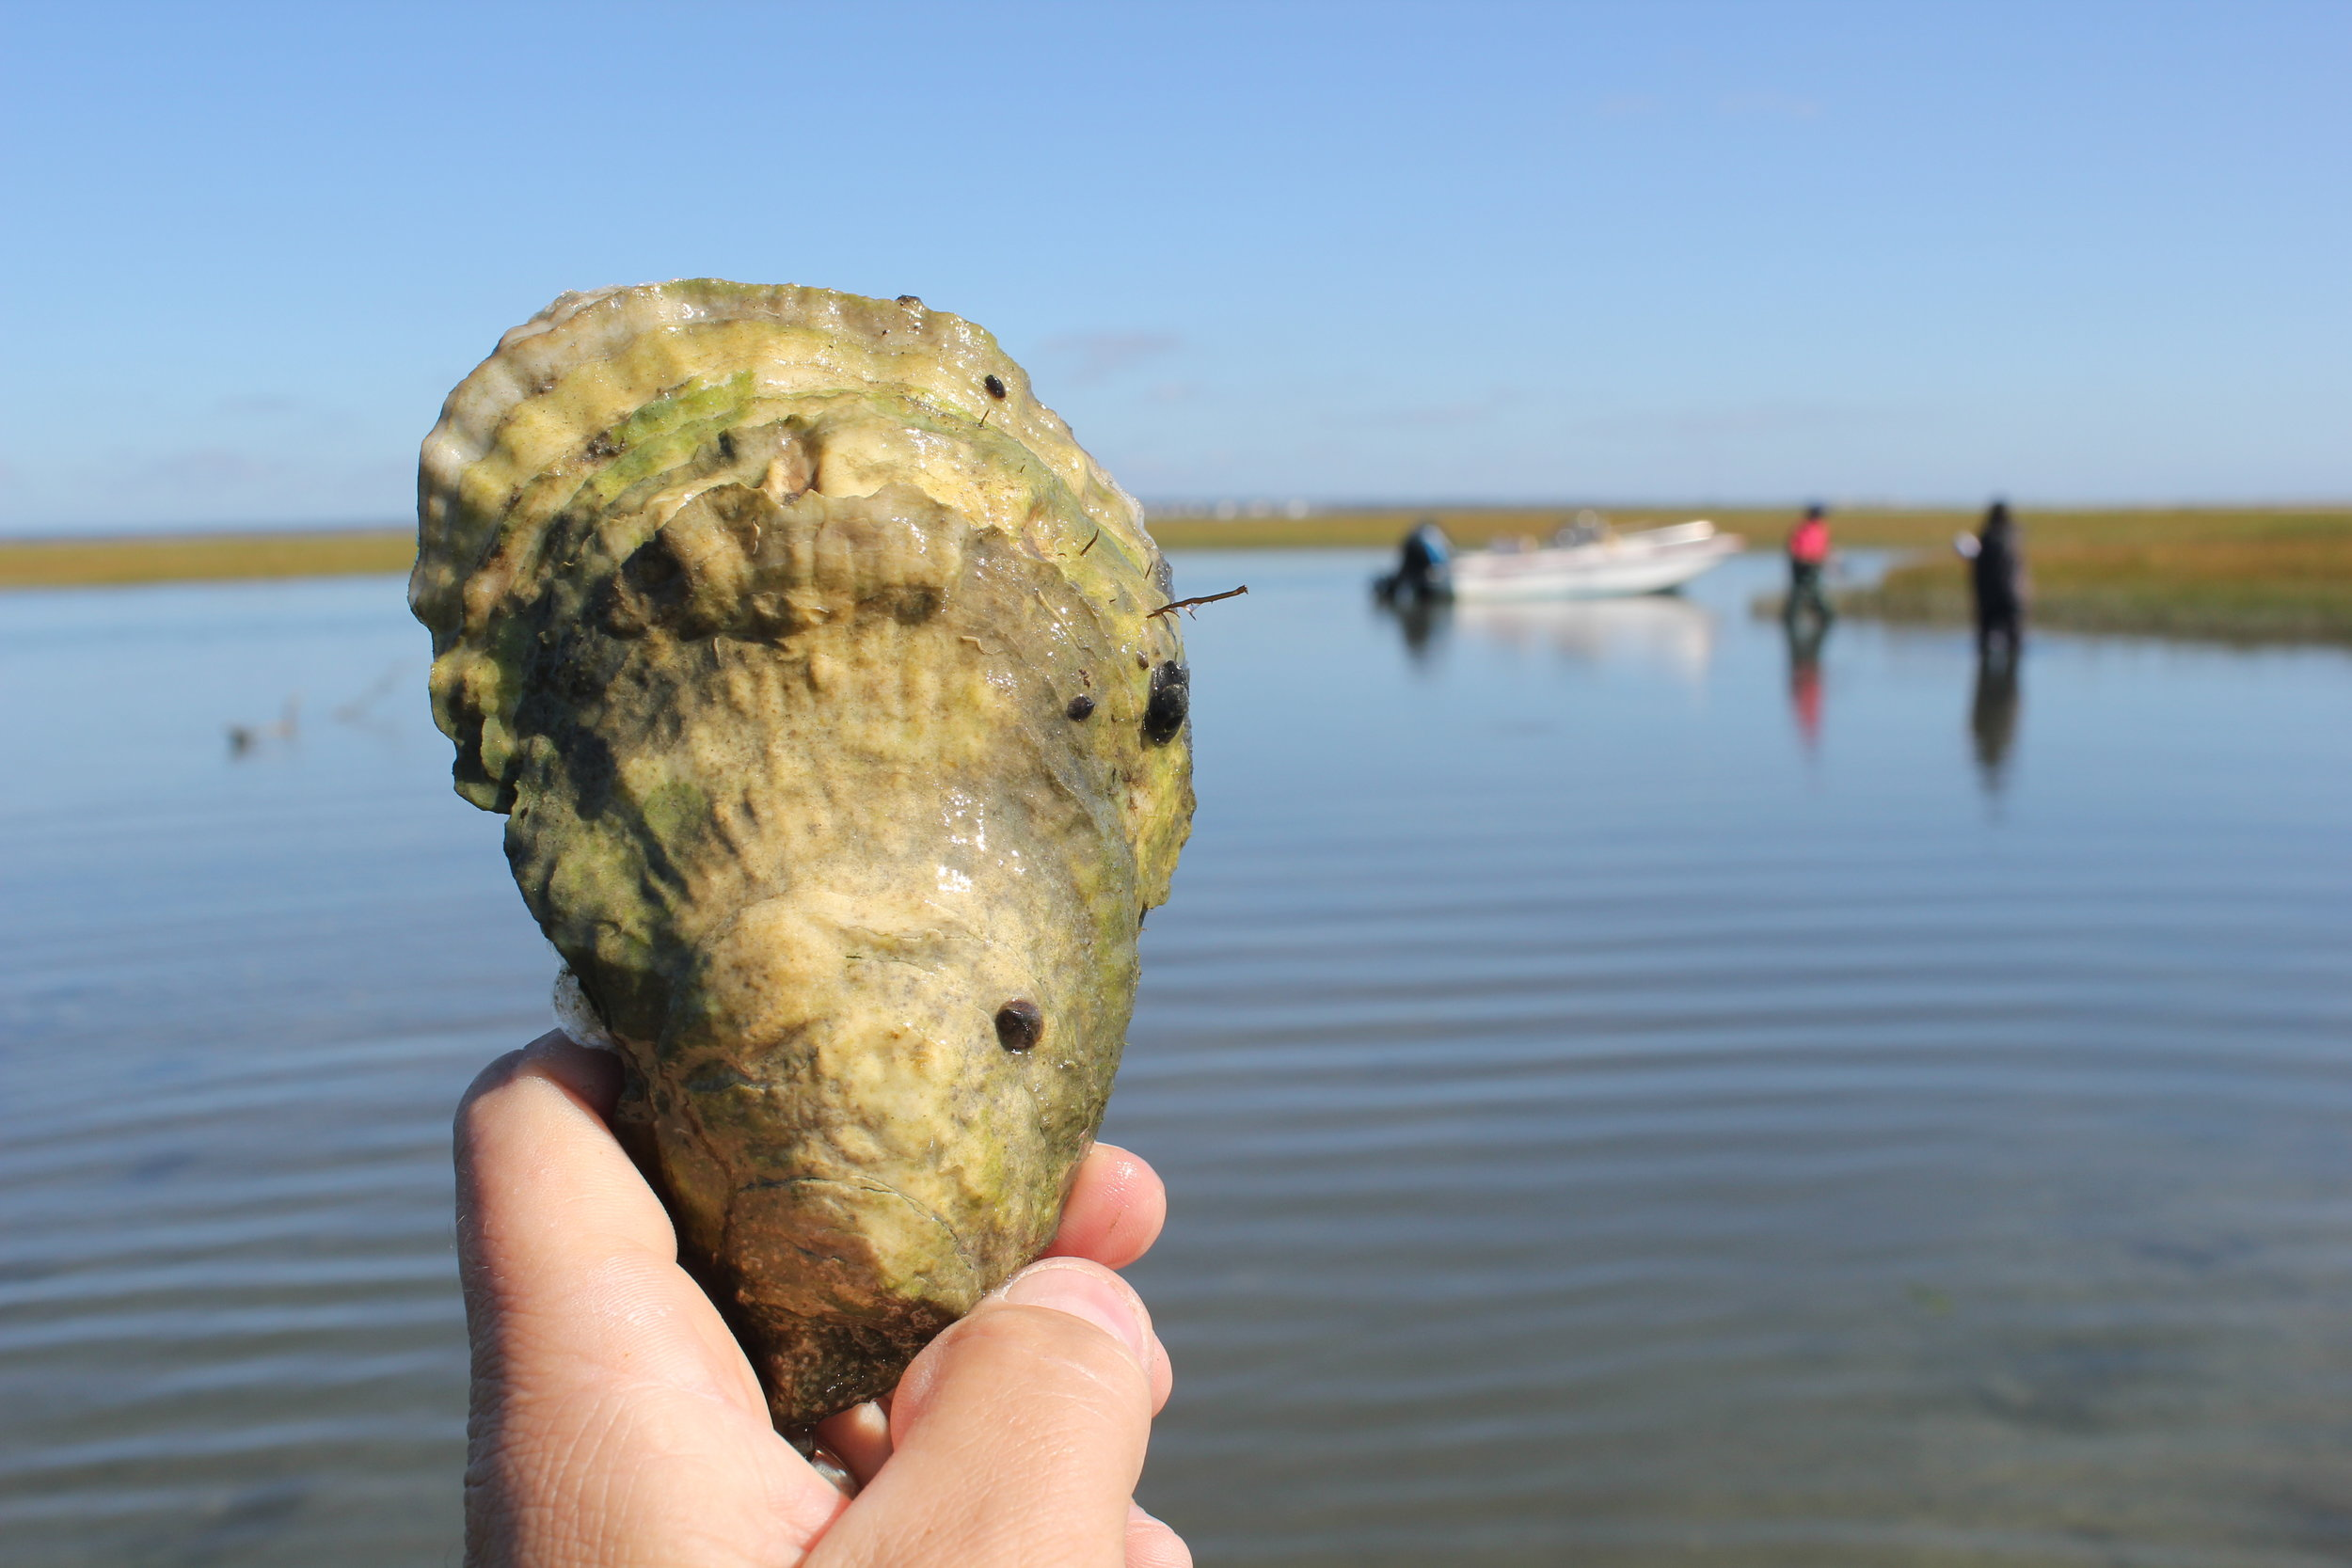 Record 10_16 Oyster being held.JPG